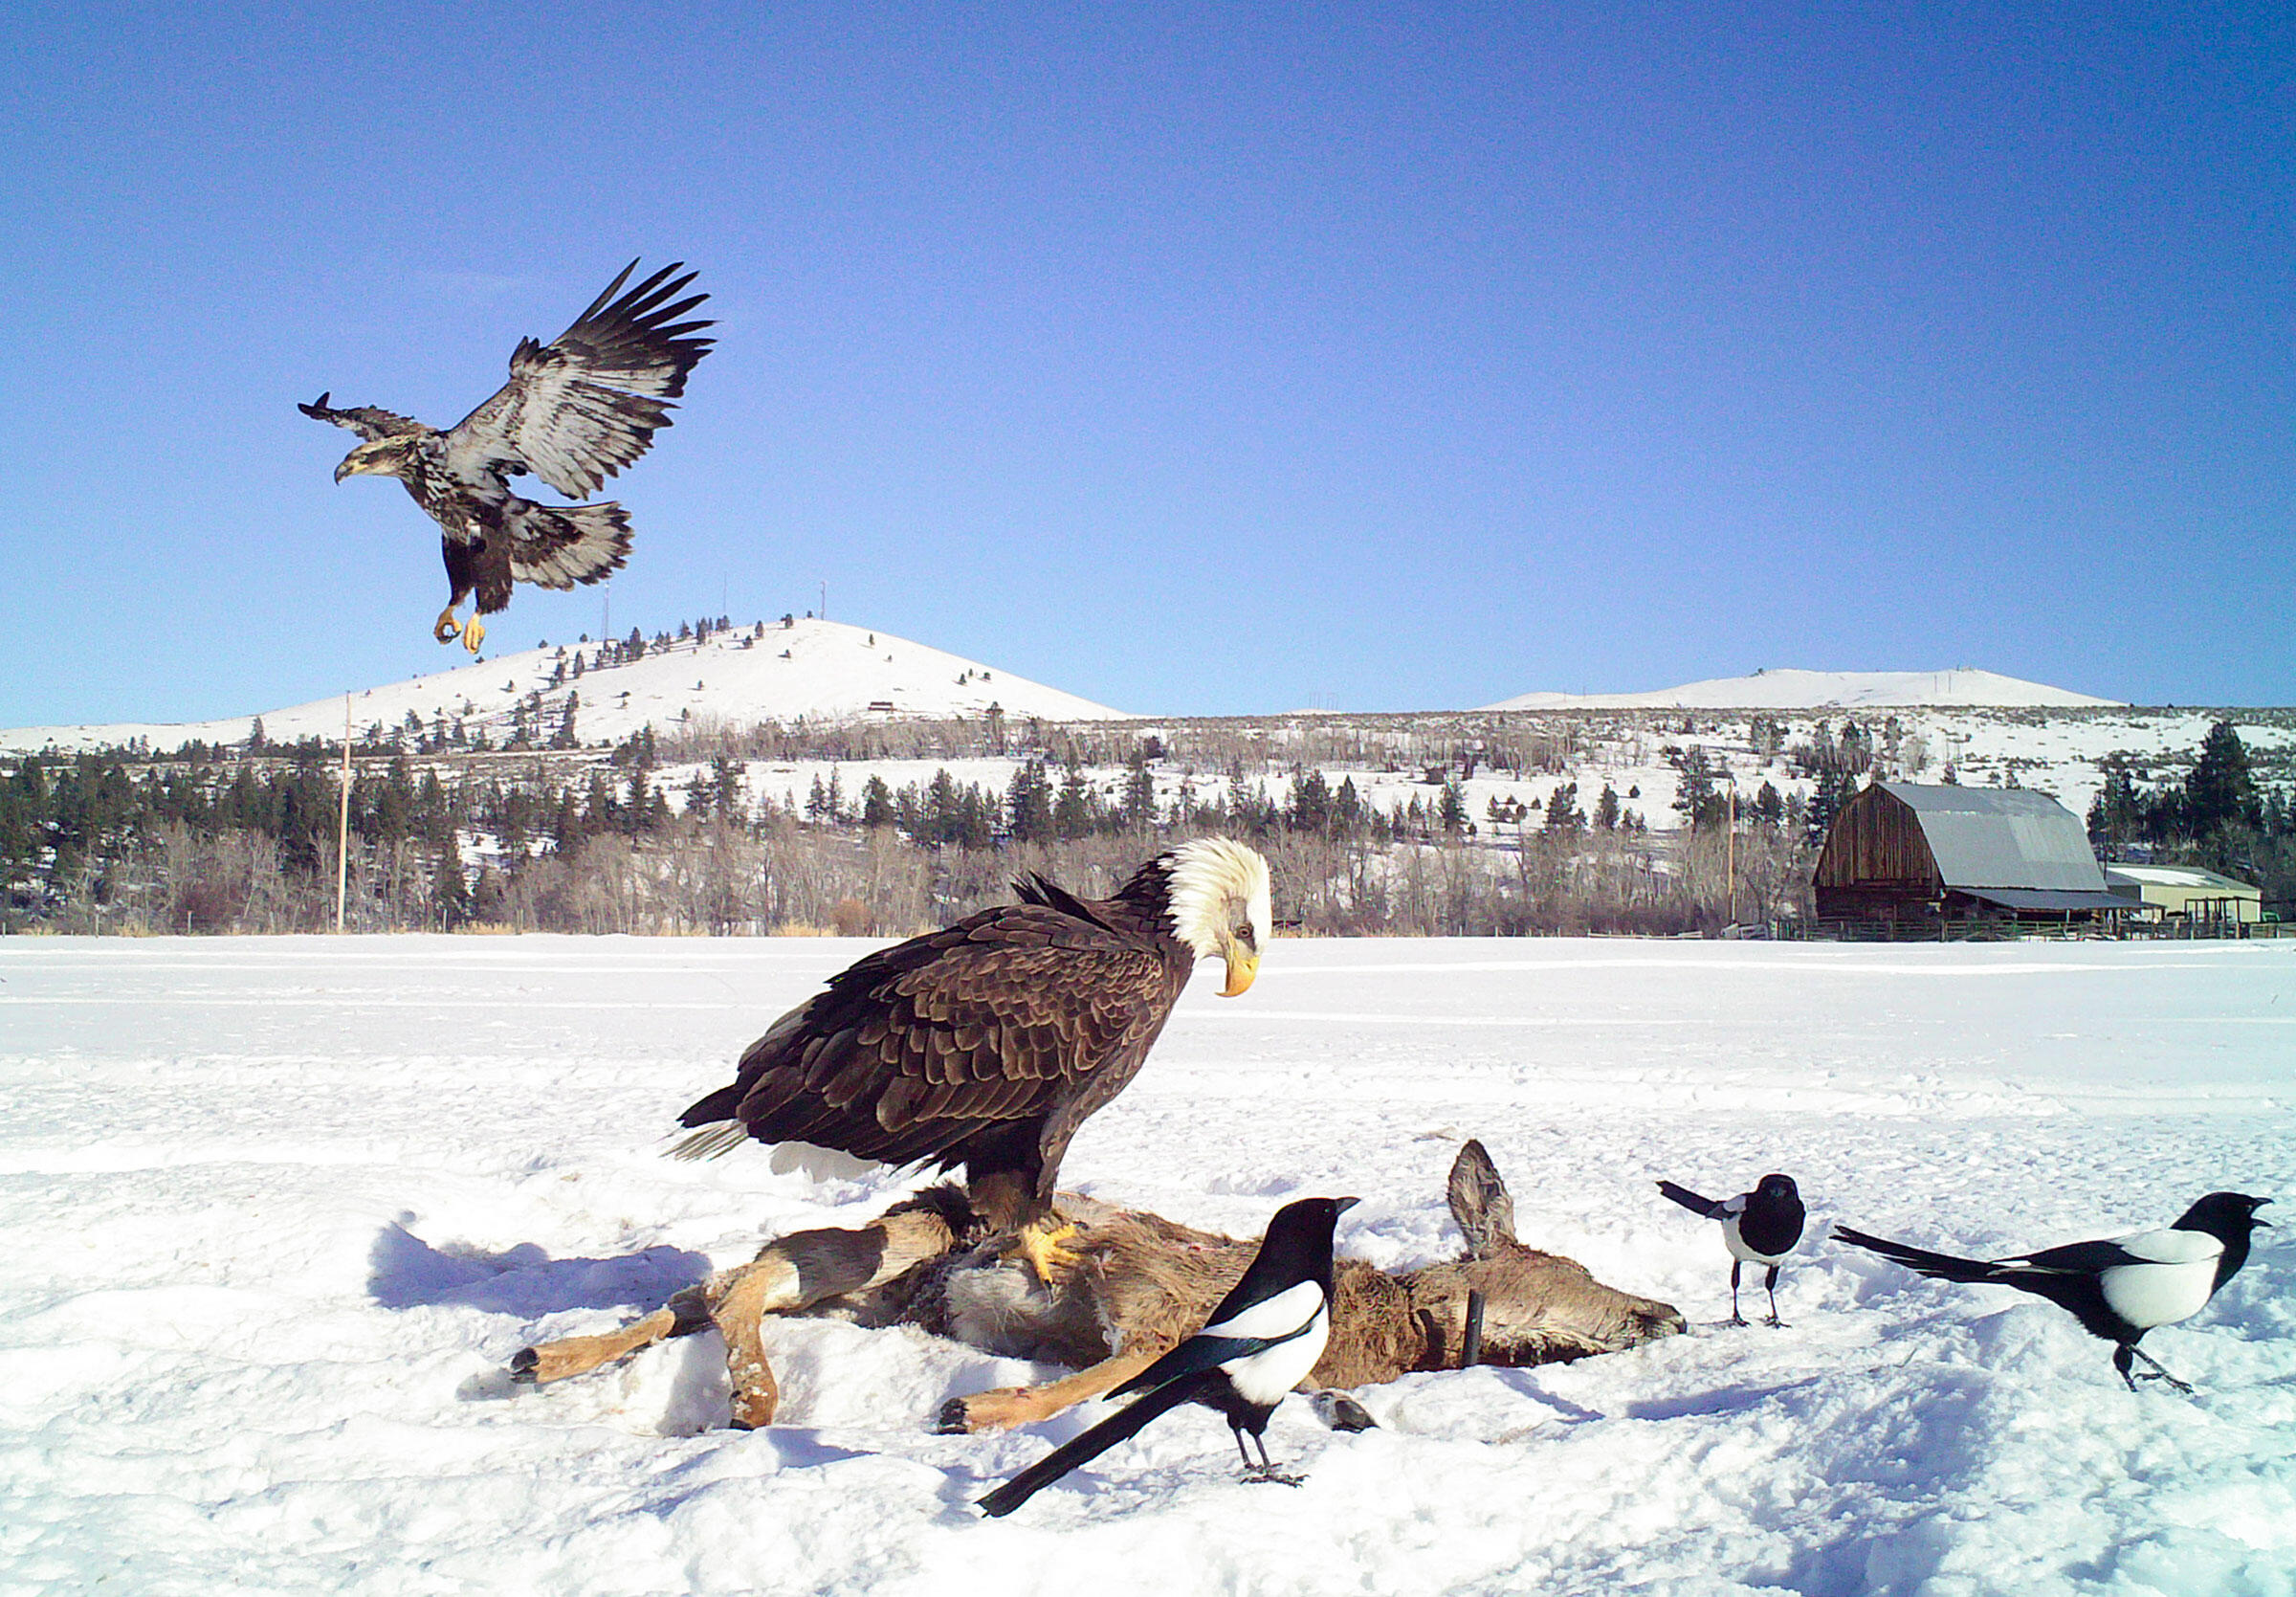 Bald Eagles and magpies feast on a deer carcass at a camera-trap station in Montana's Bitterroot Valley. Bitterroot Valley Winter Eagle Project